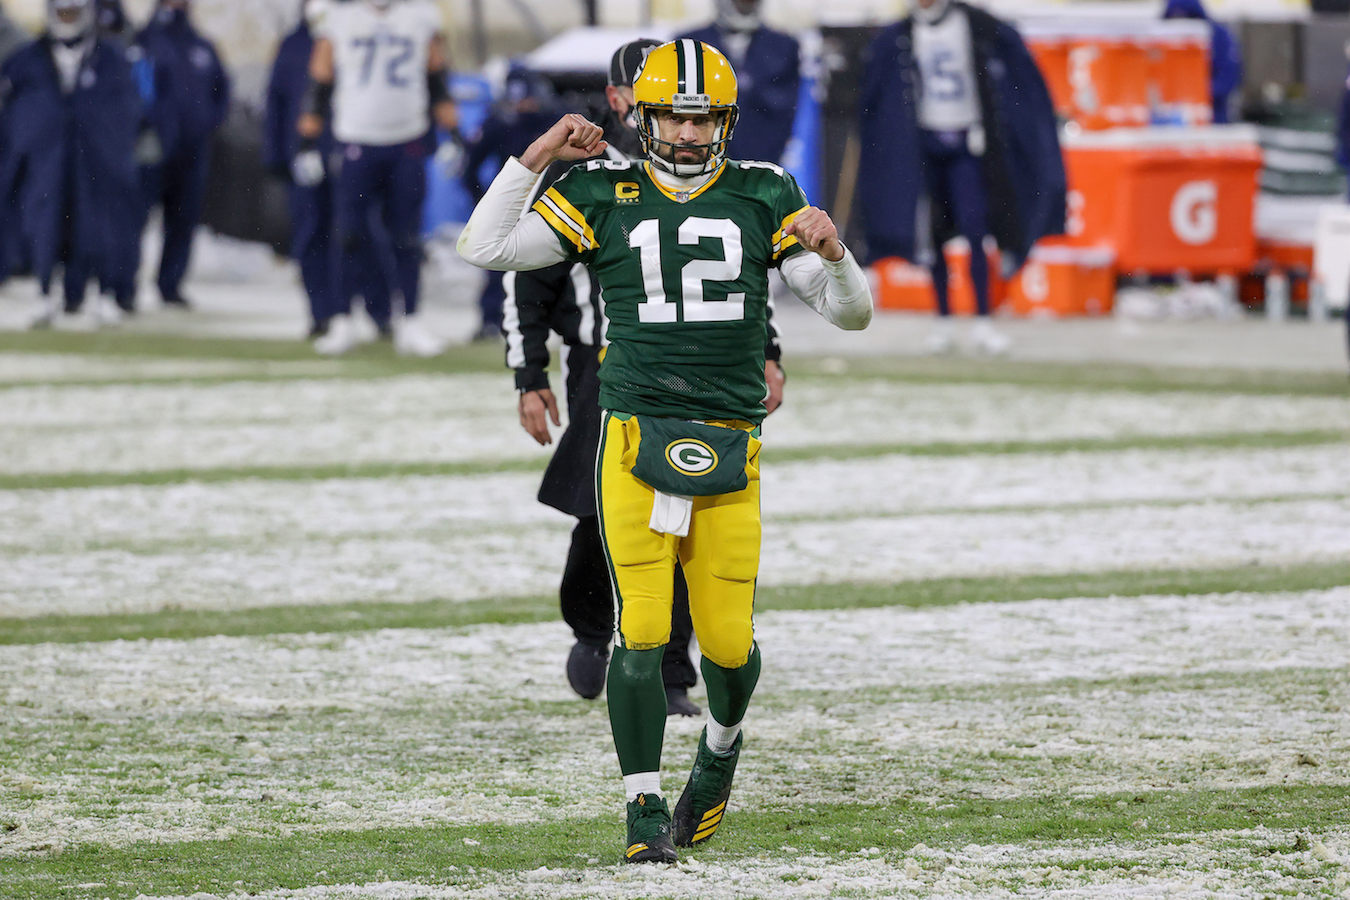 Green Bay Packers quarterback Aaron Rodgers has already earned an award for his 2020 performances.